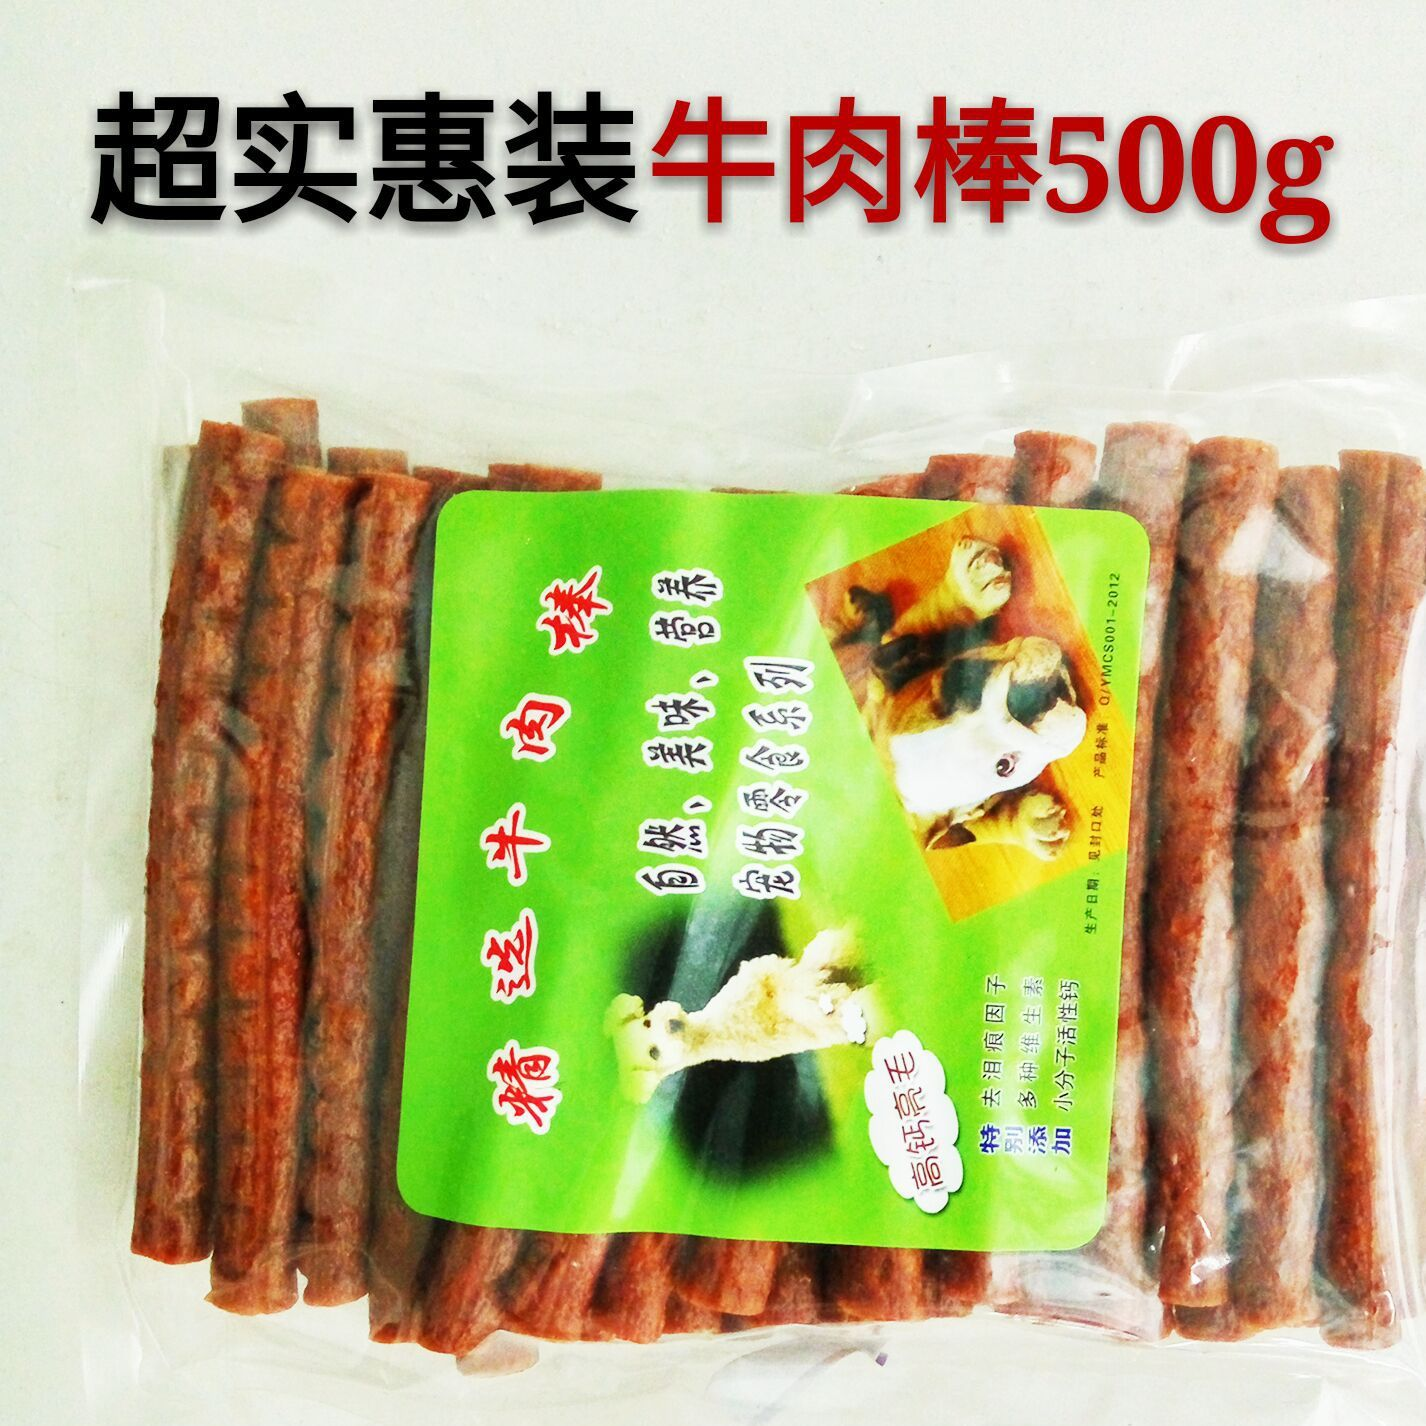 High pet cattle 500g dog beef strips meat pieces dog food training dog pet snacks teddy golden retriever wholesale